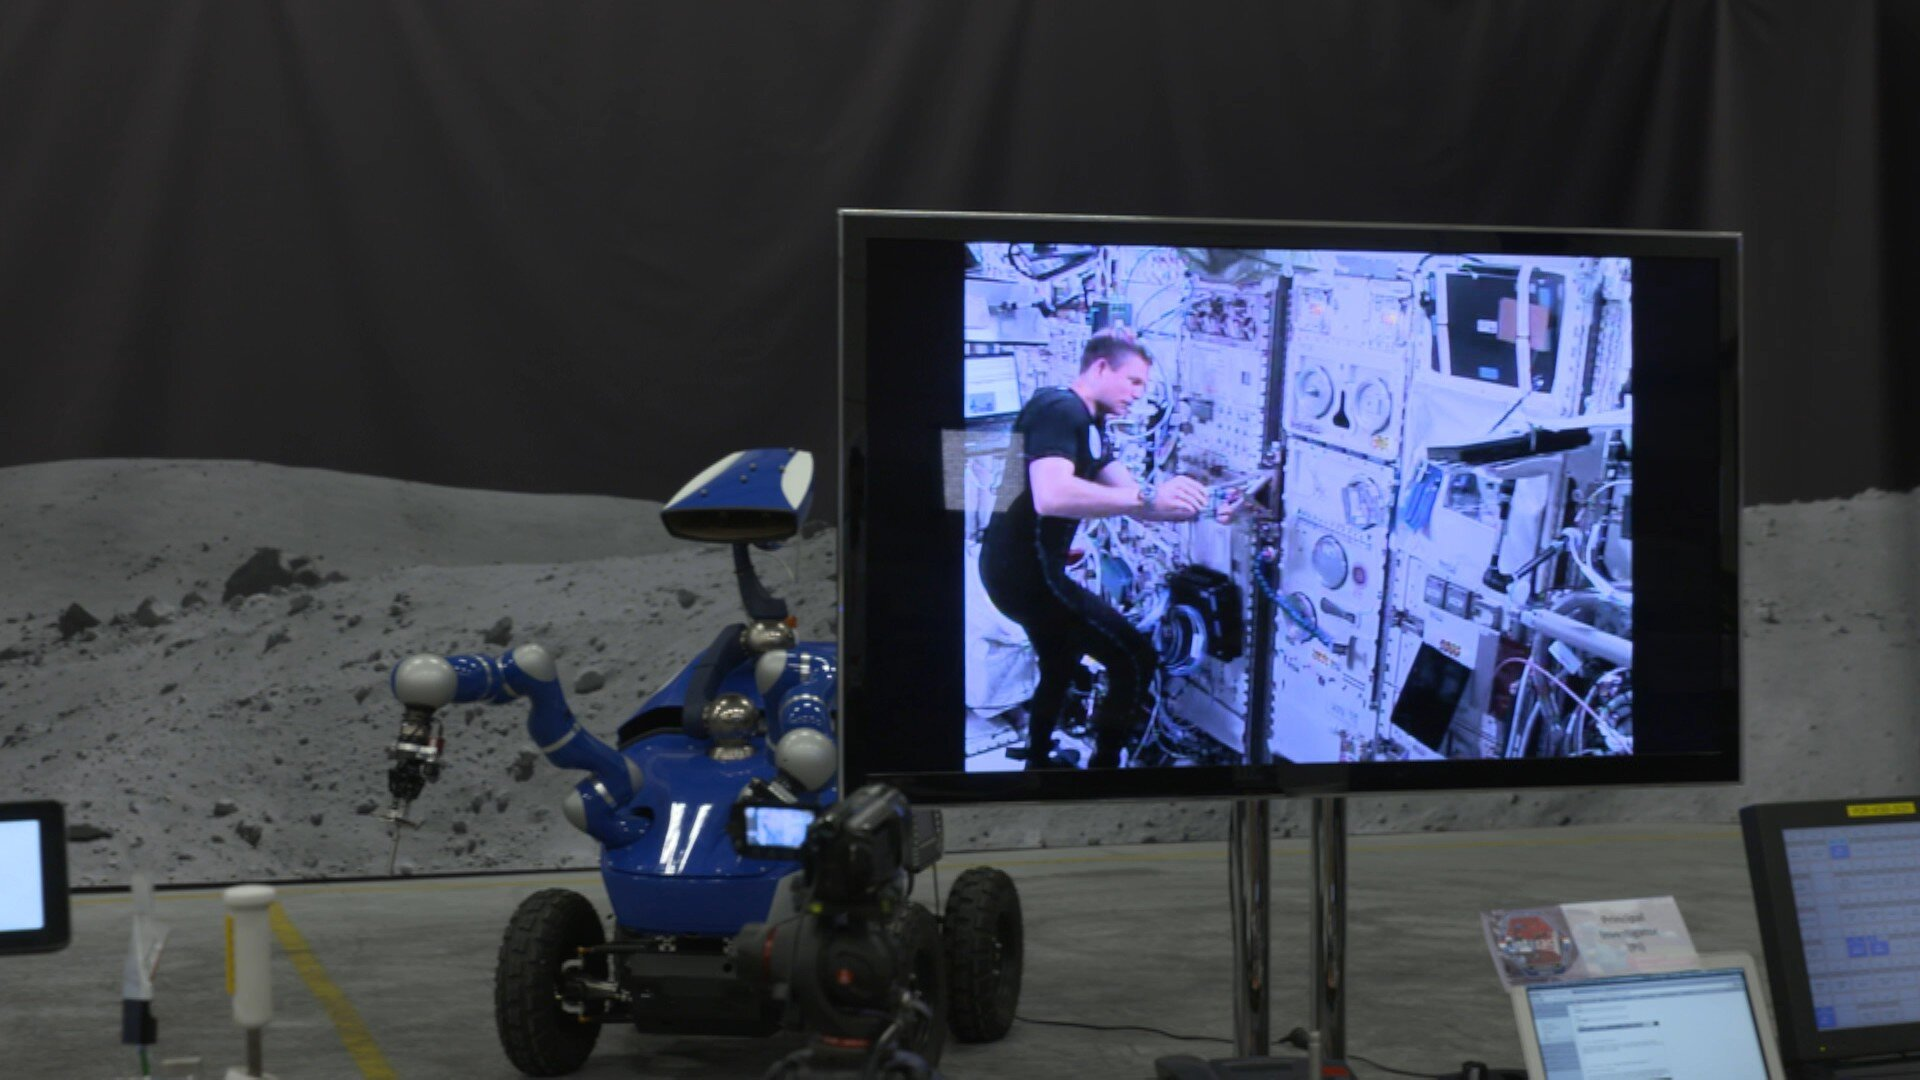 Andreas controlling rover